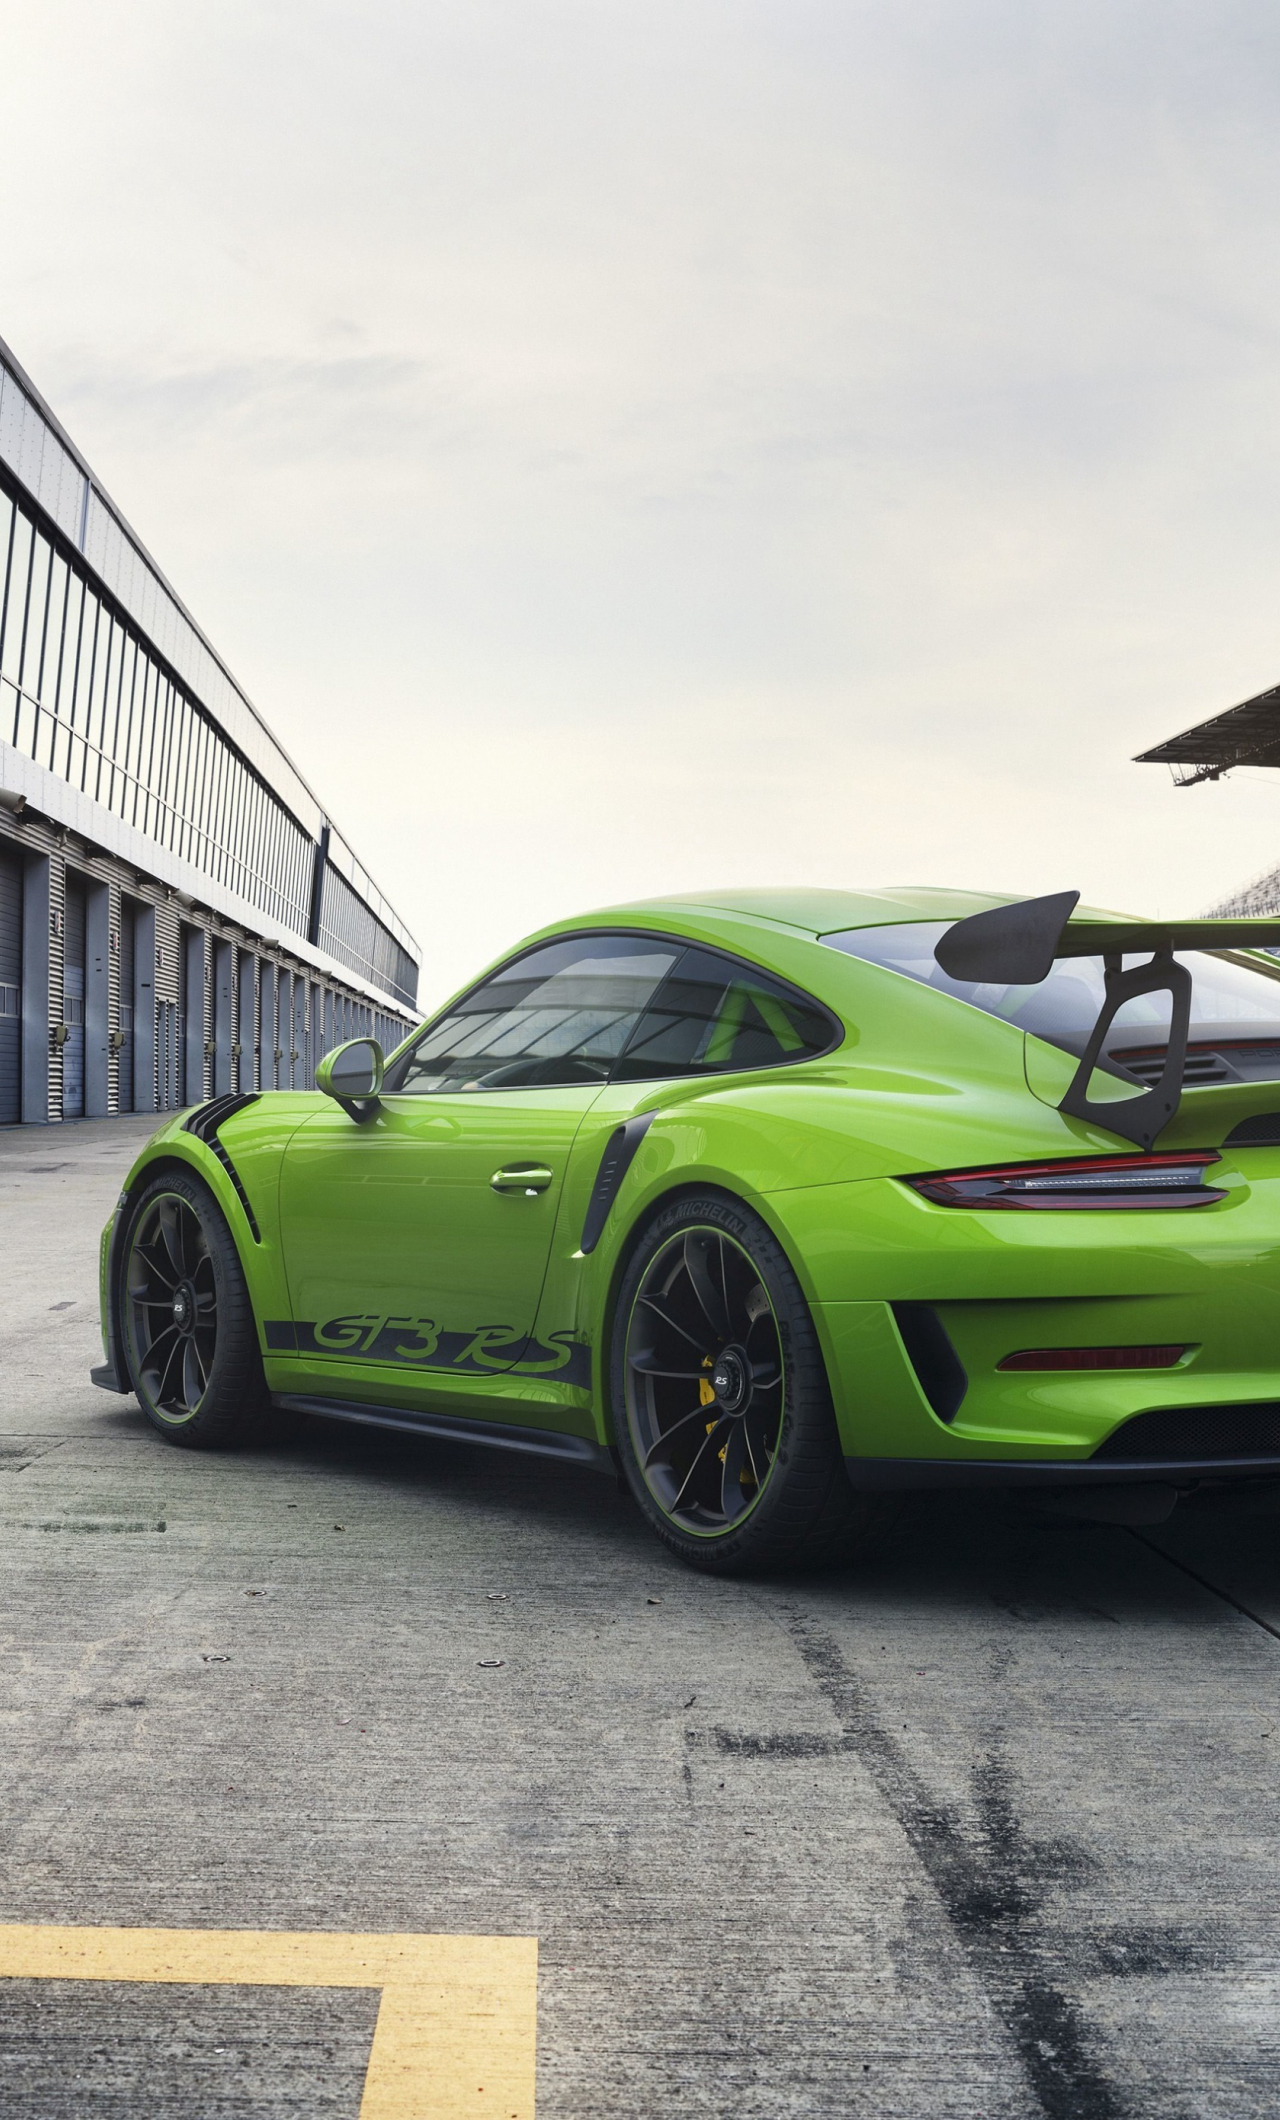 Download 1280x2120 Wallpaper Limited Edition Porsche 911 Gt3 Rs 2018 Car Rear Iphone 6 Plus 1280x2120 Hd Image Background 3371